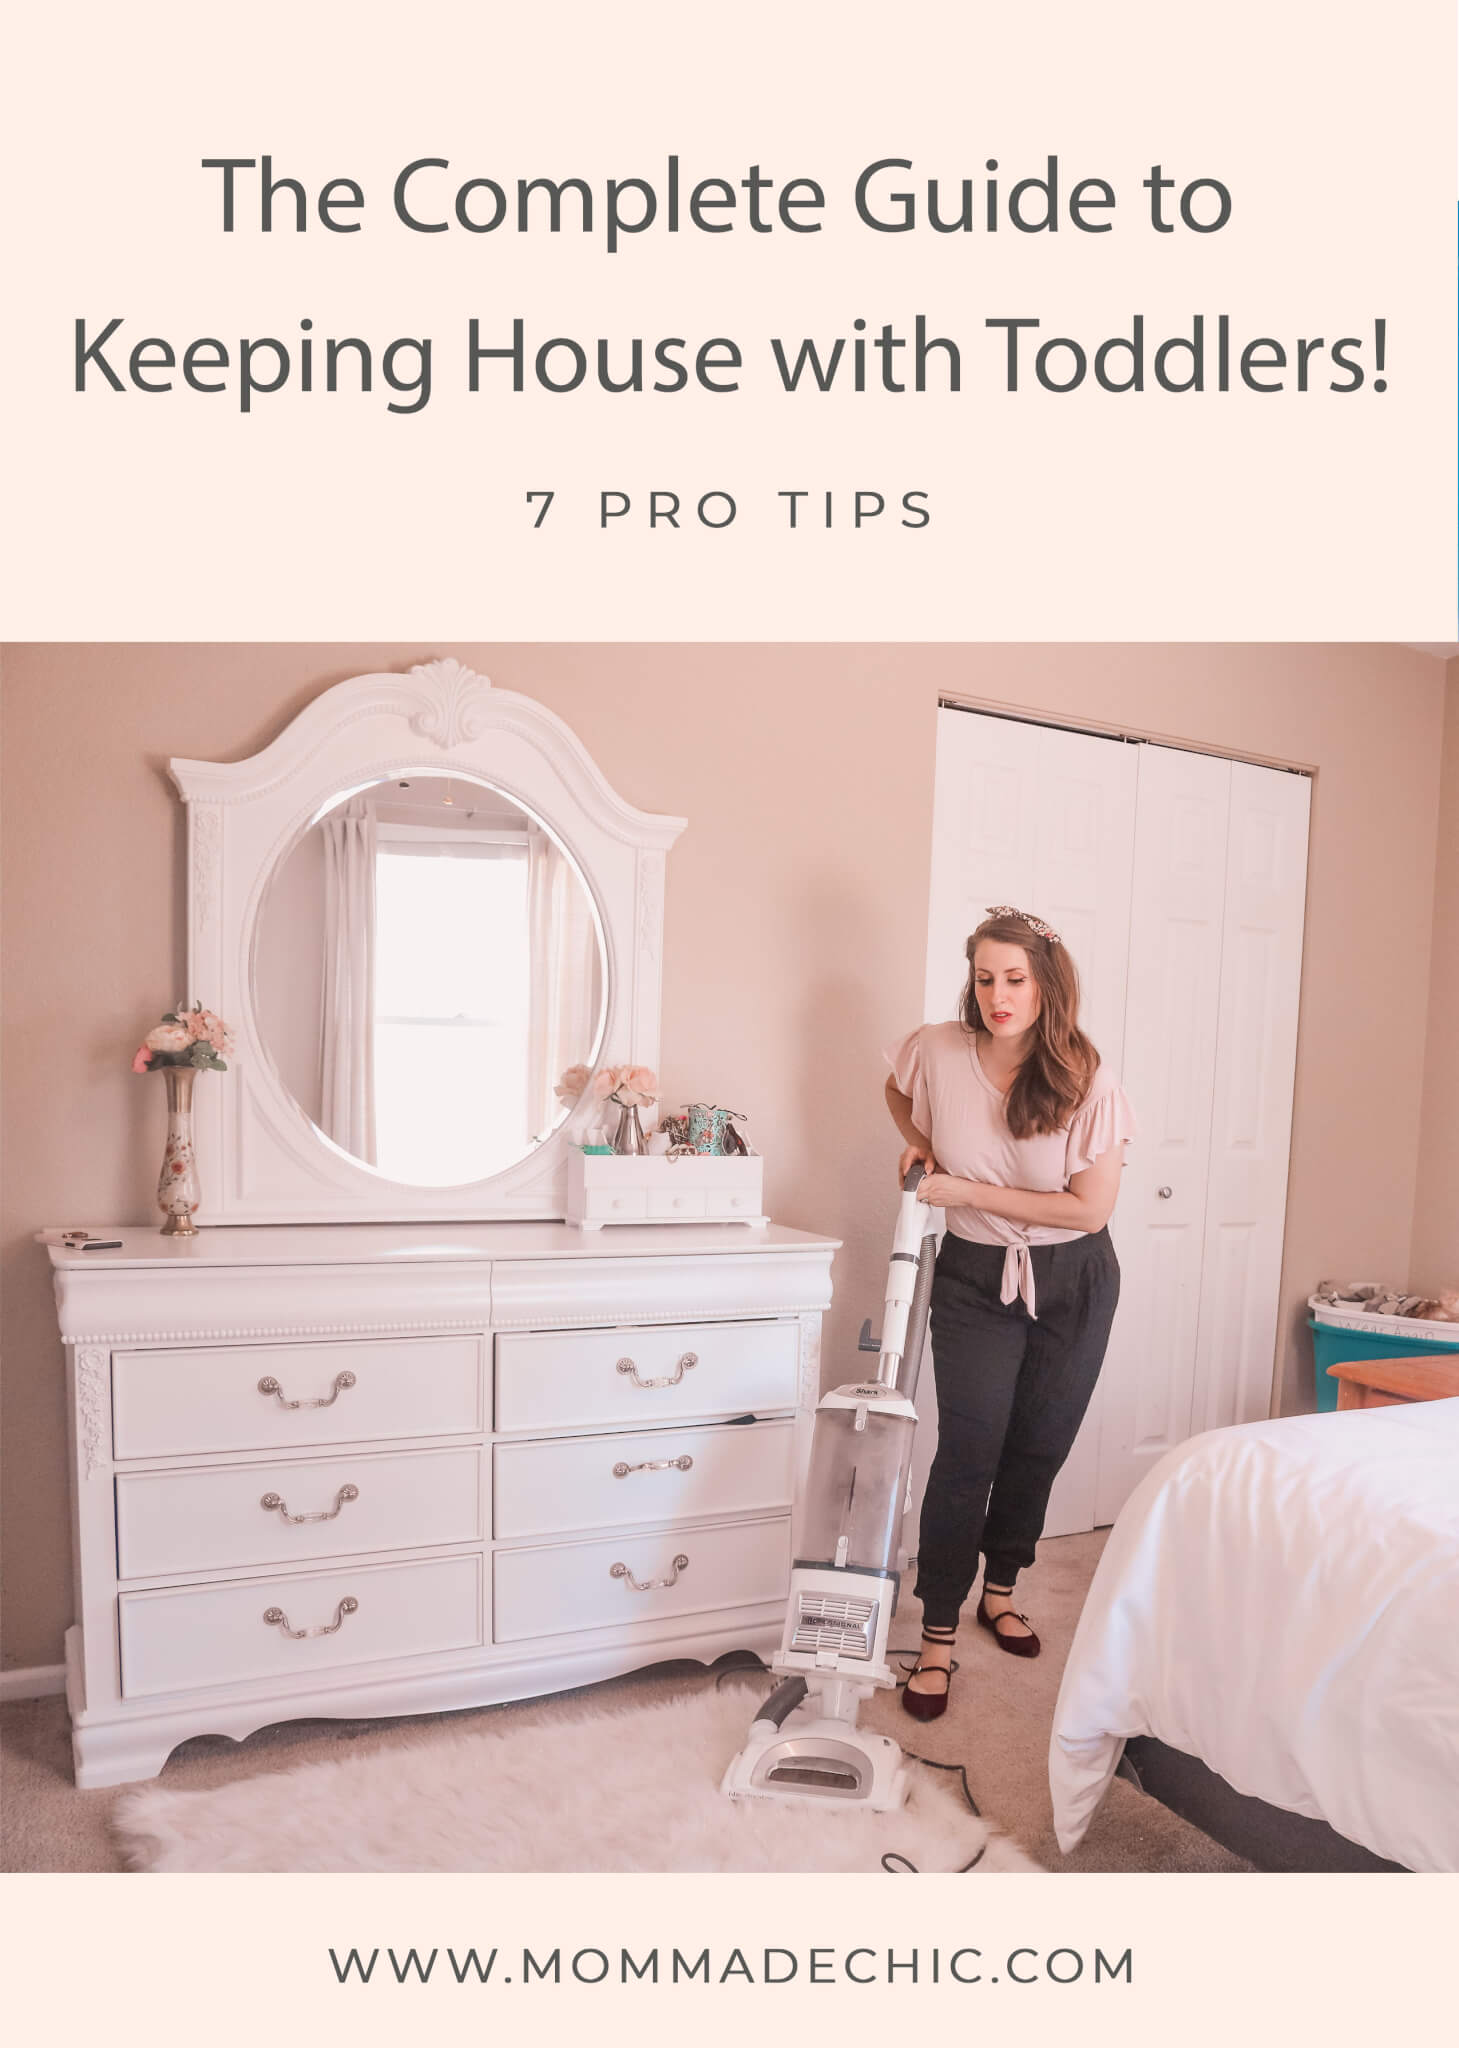 Toddler Cleaning Guide